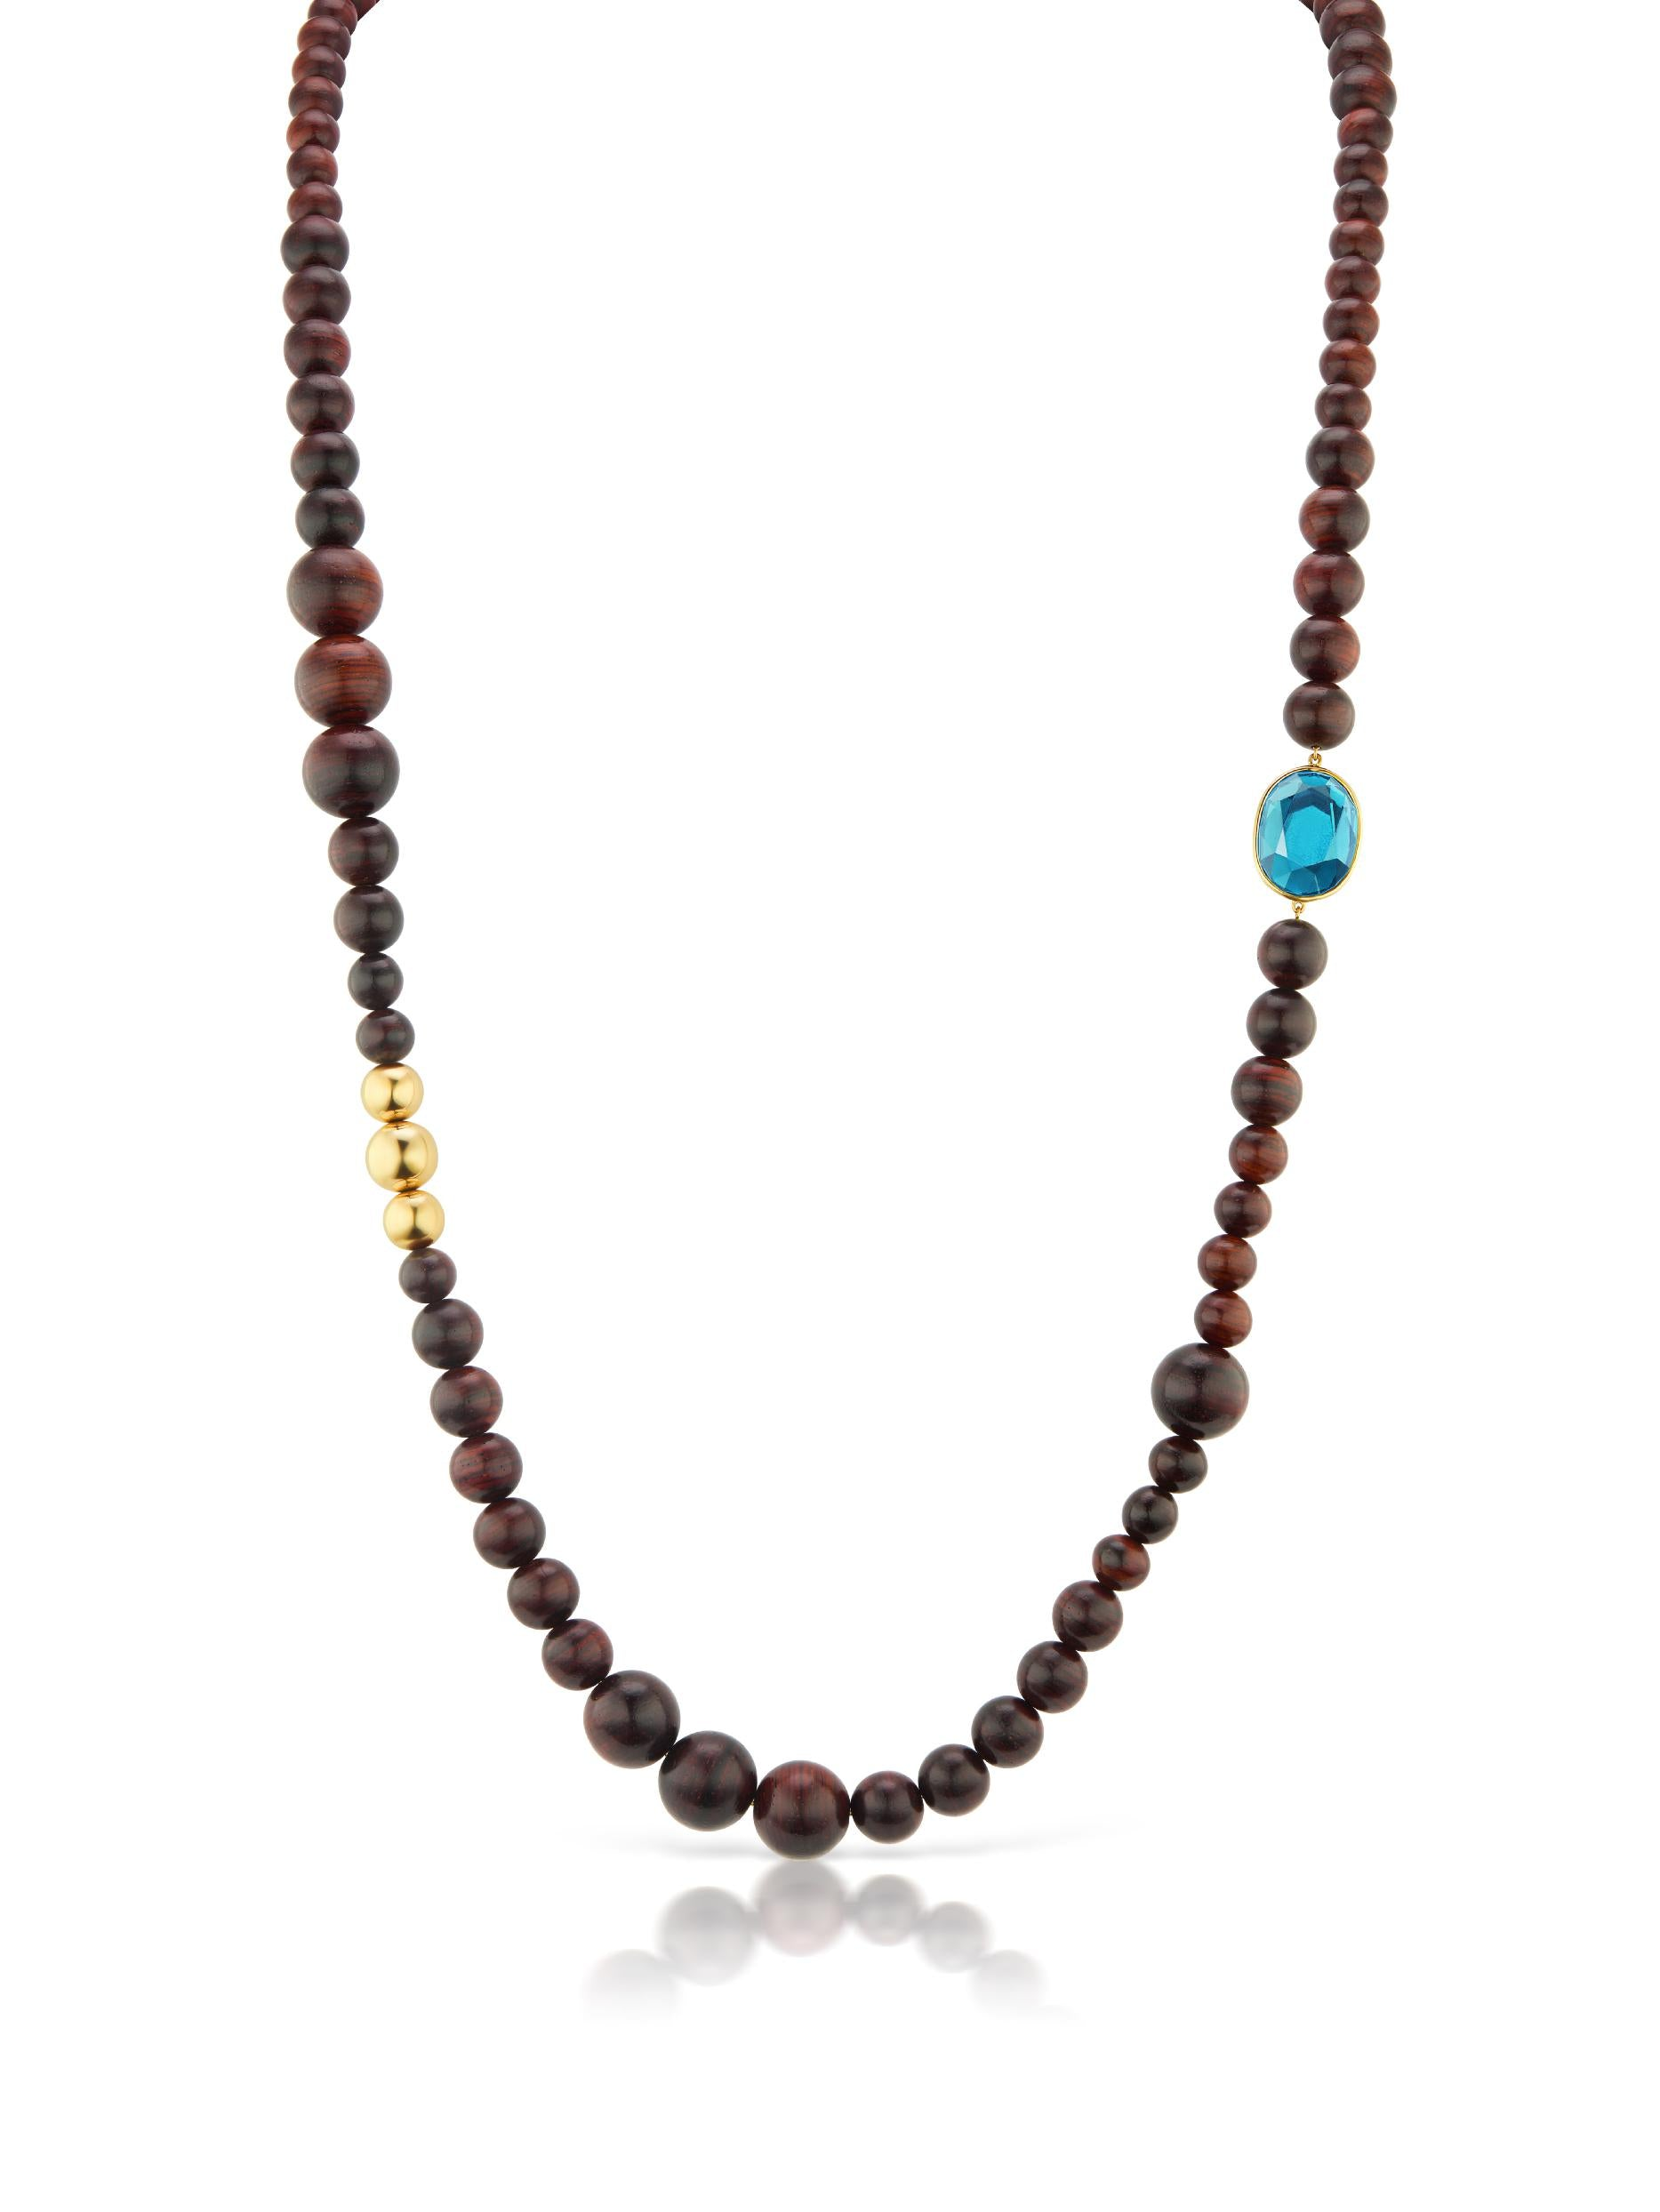 Voyager Wood Bead Necklace with Blue Topaz